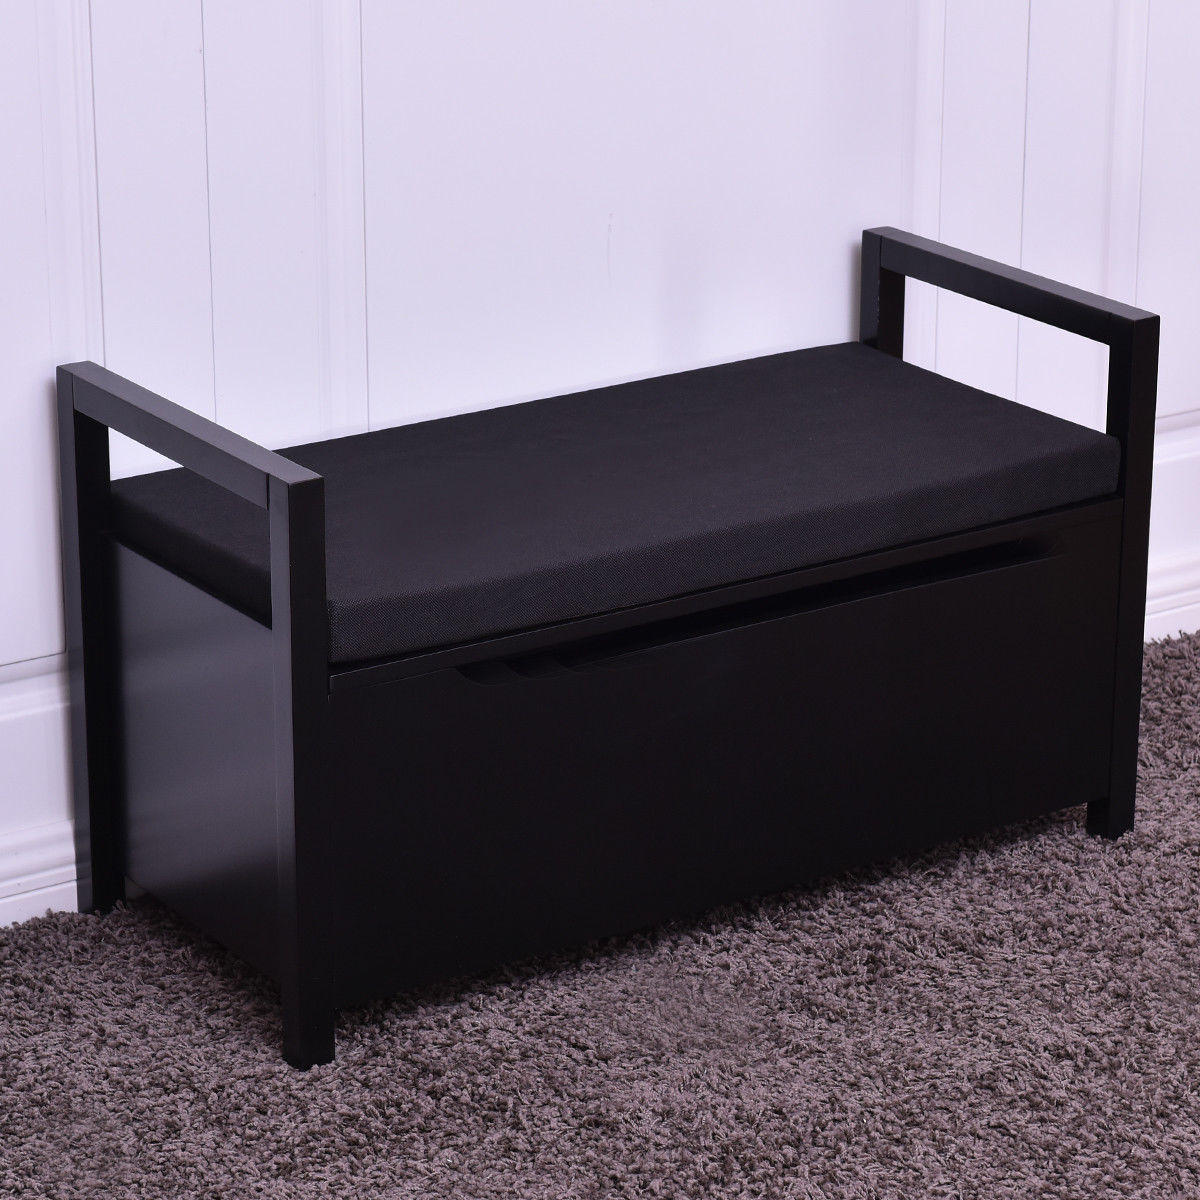 Product Image Costway Shoe Bench Storage Rack Cushion Seat Ottoman Bedroom  Hallway Entryway Black